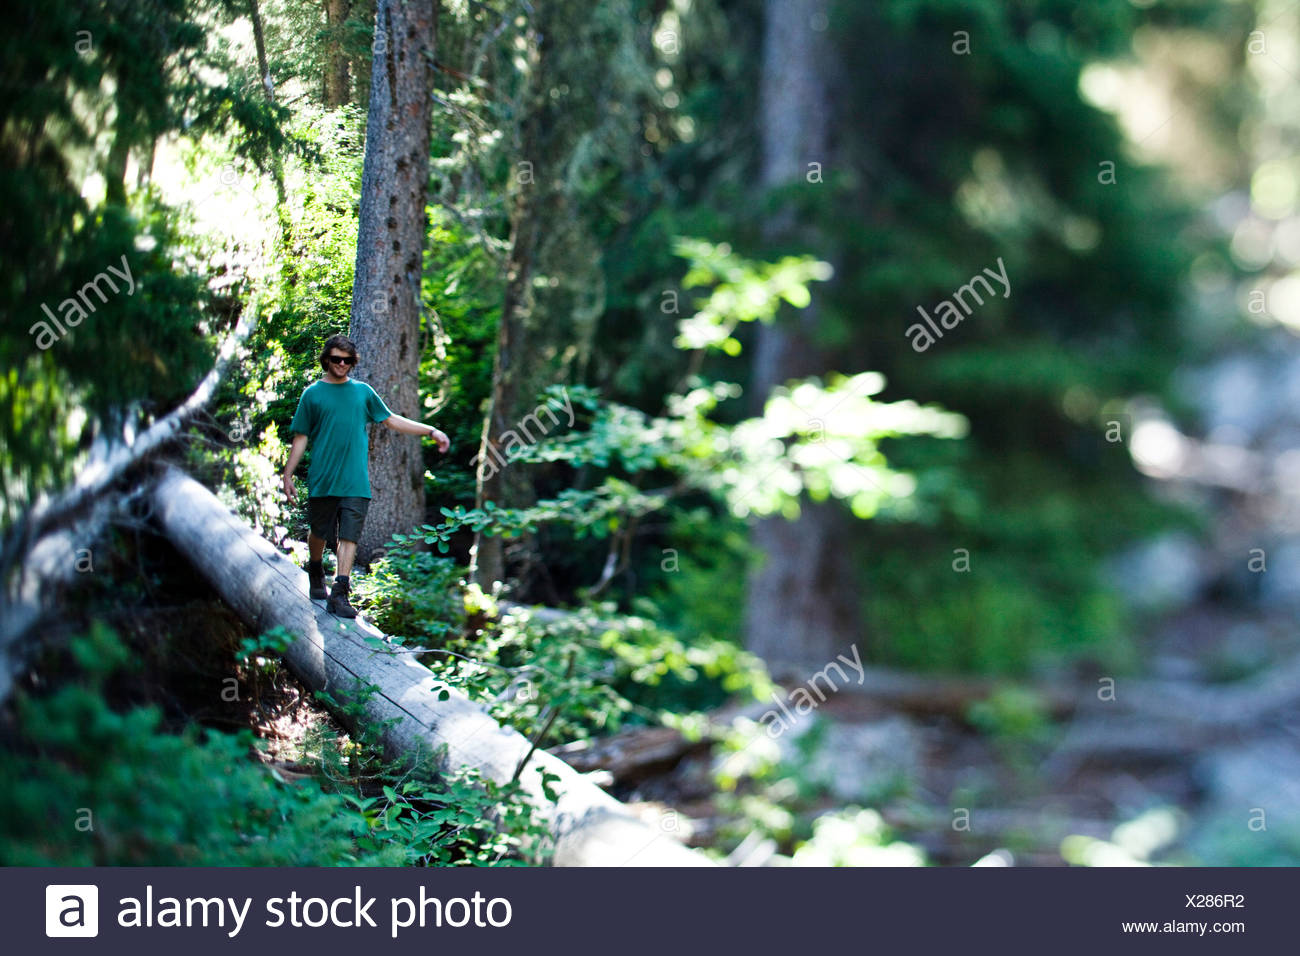 A young man hiking walks across a fallen log in Wyoming. - Stock Image